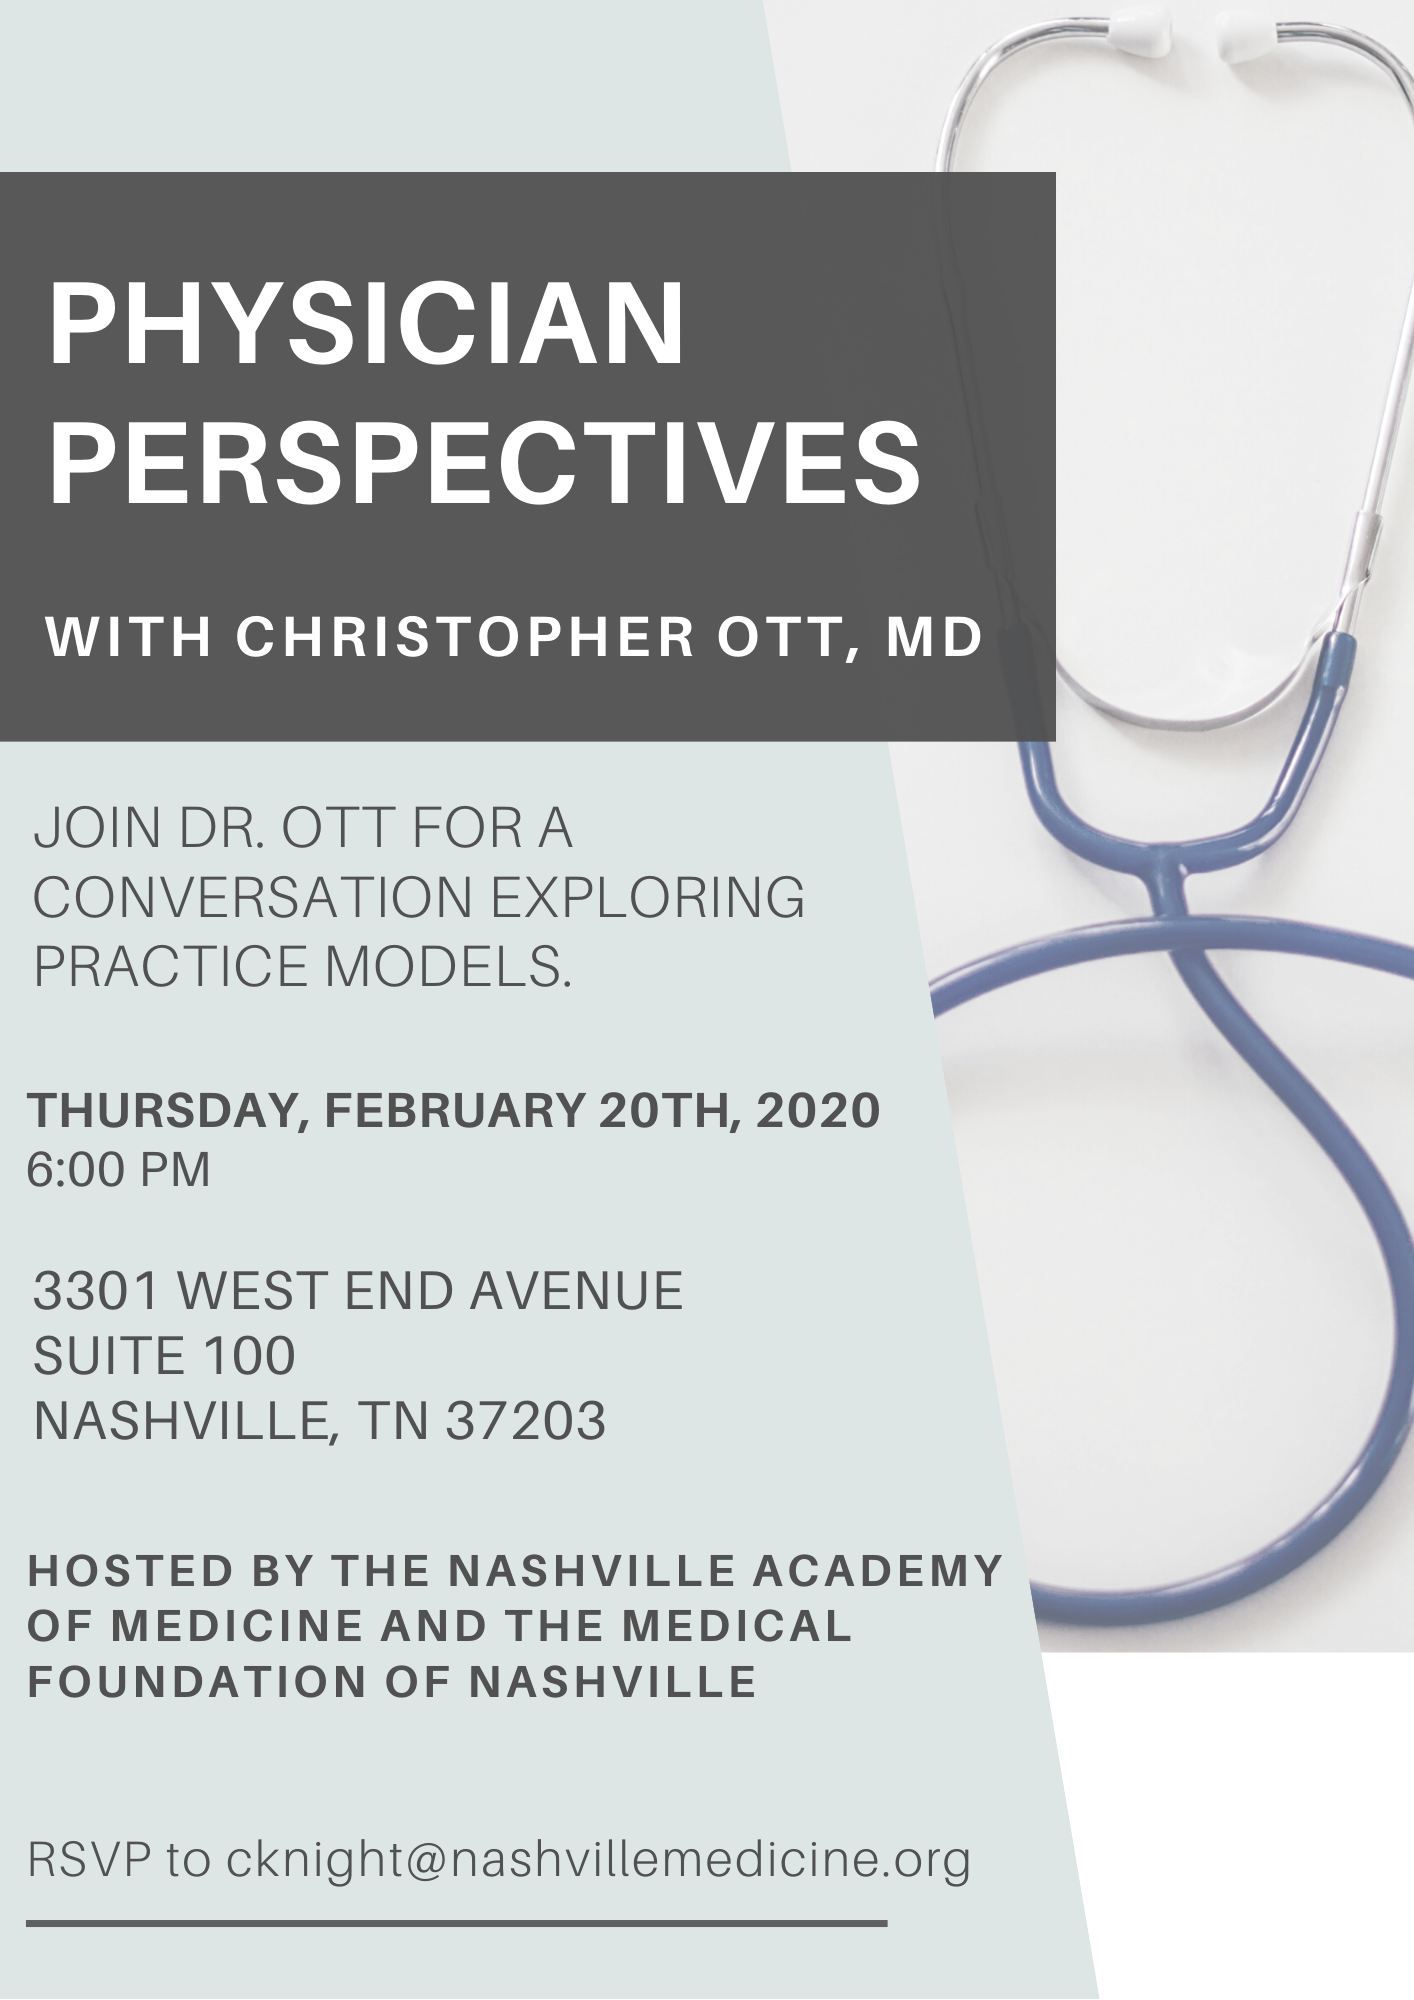 Physician Perspectives with Christopher Ott, MD @ Nashville Academy of Medicine